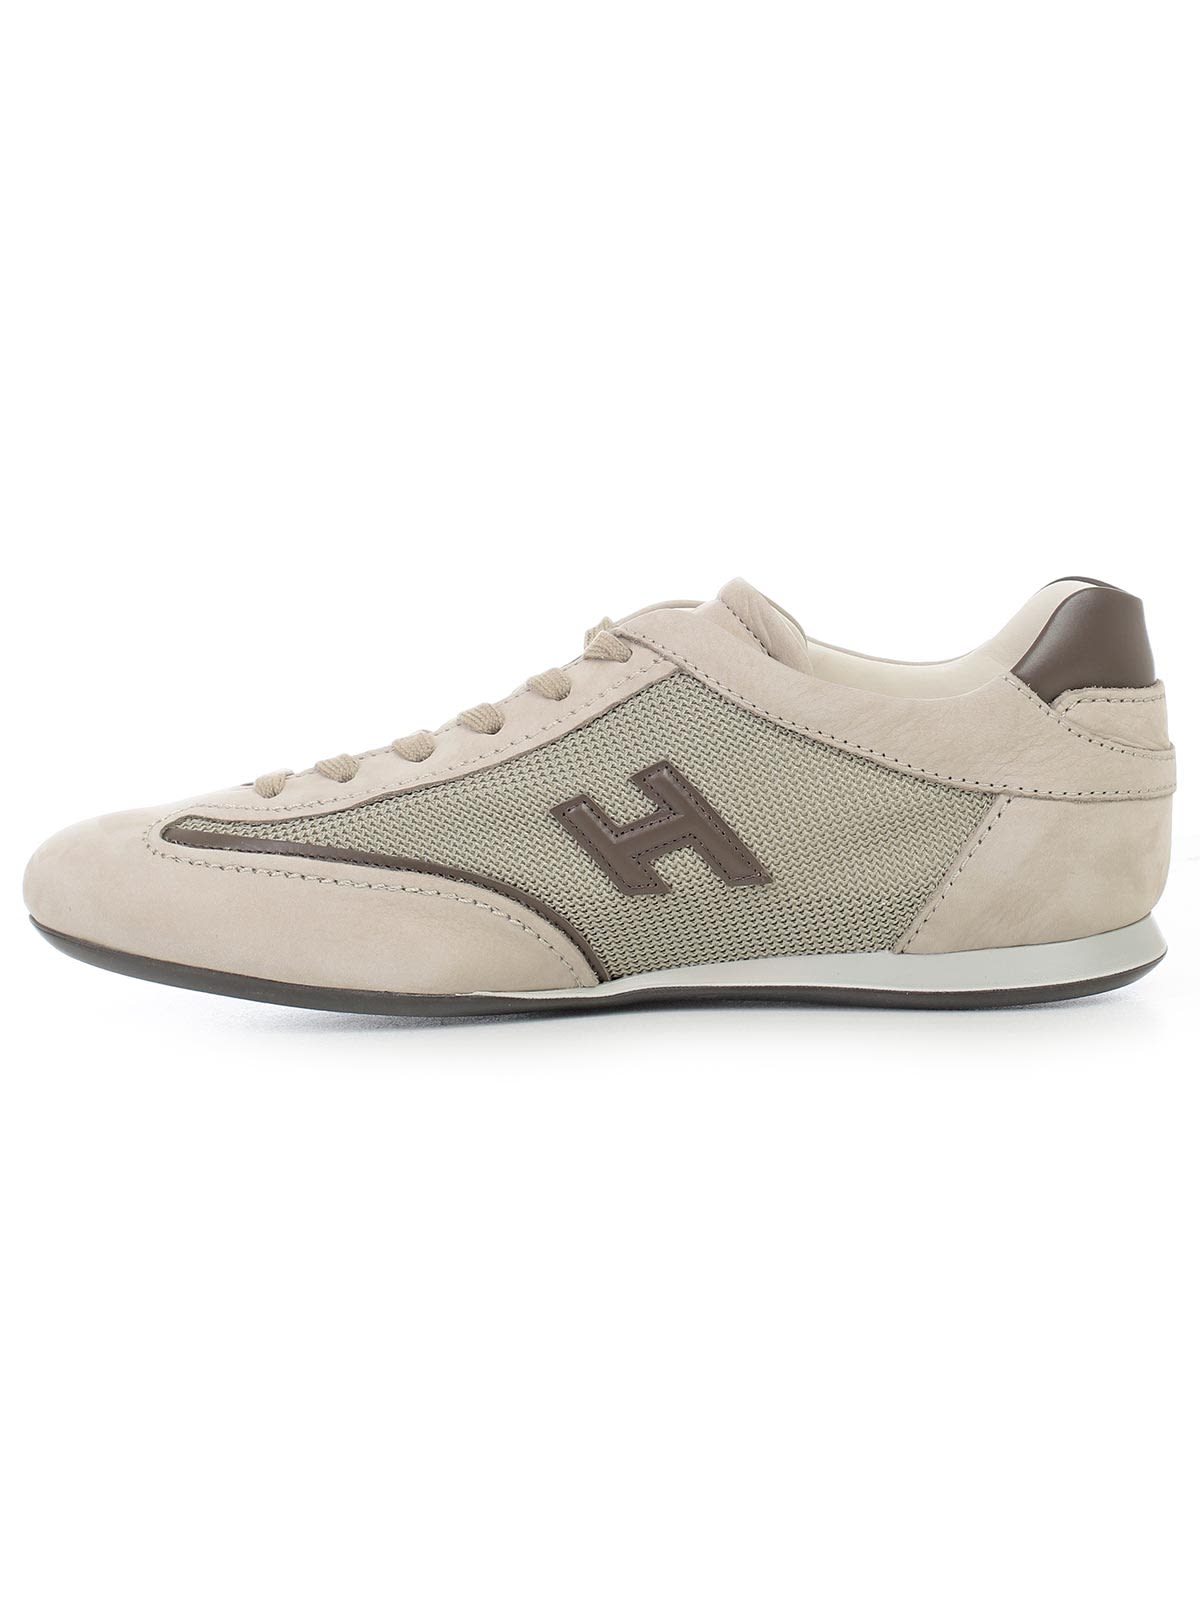 running R261 sneakers - Nude & Neutrals Hogan